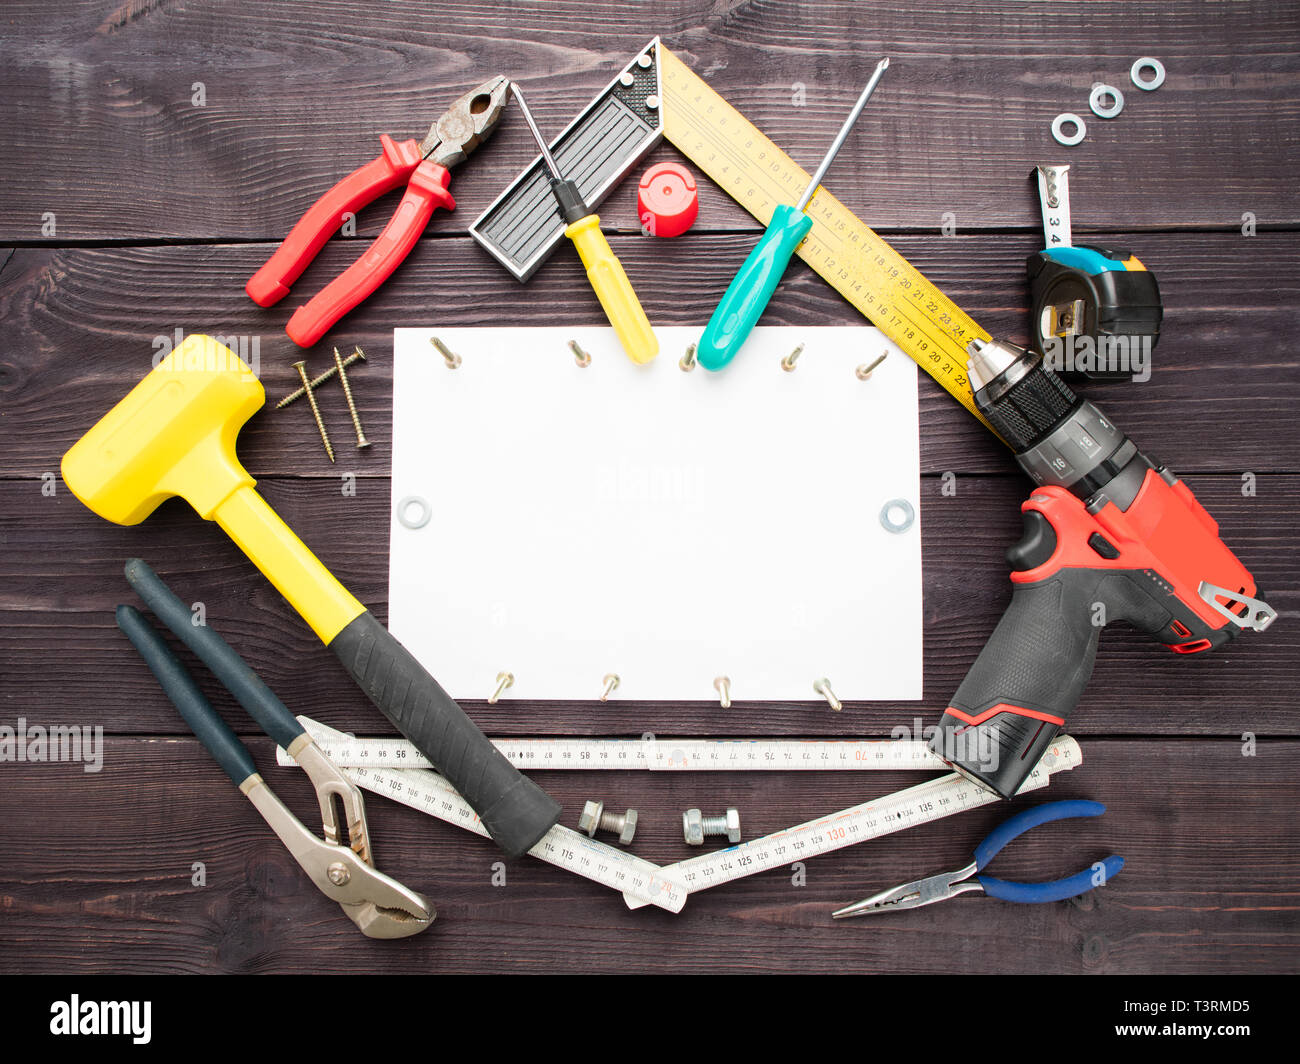 The tool building on the wooden background around the white sheet of paper Stock Photo